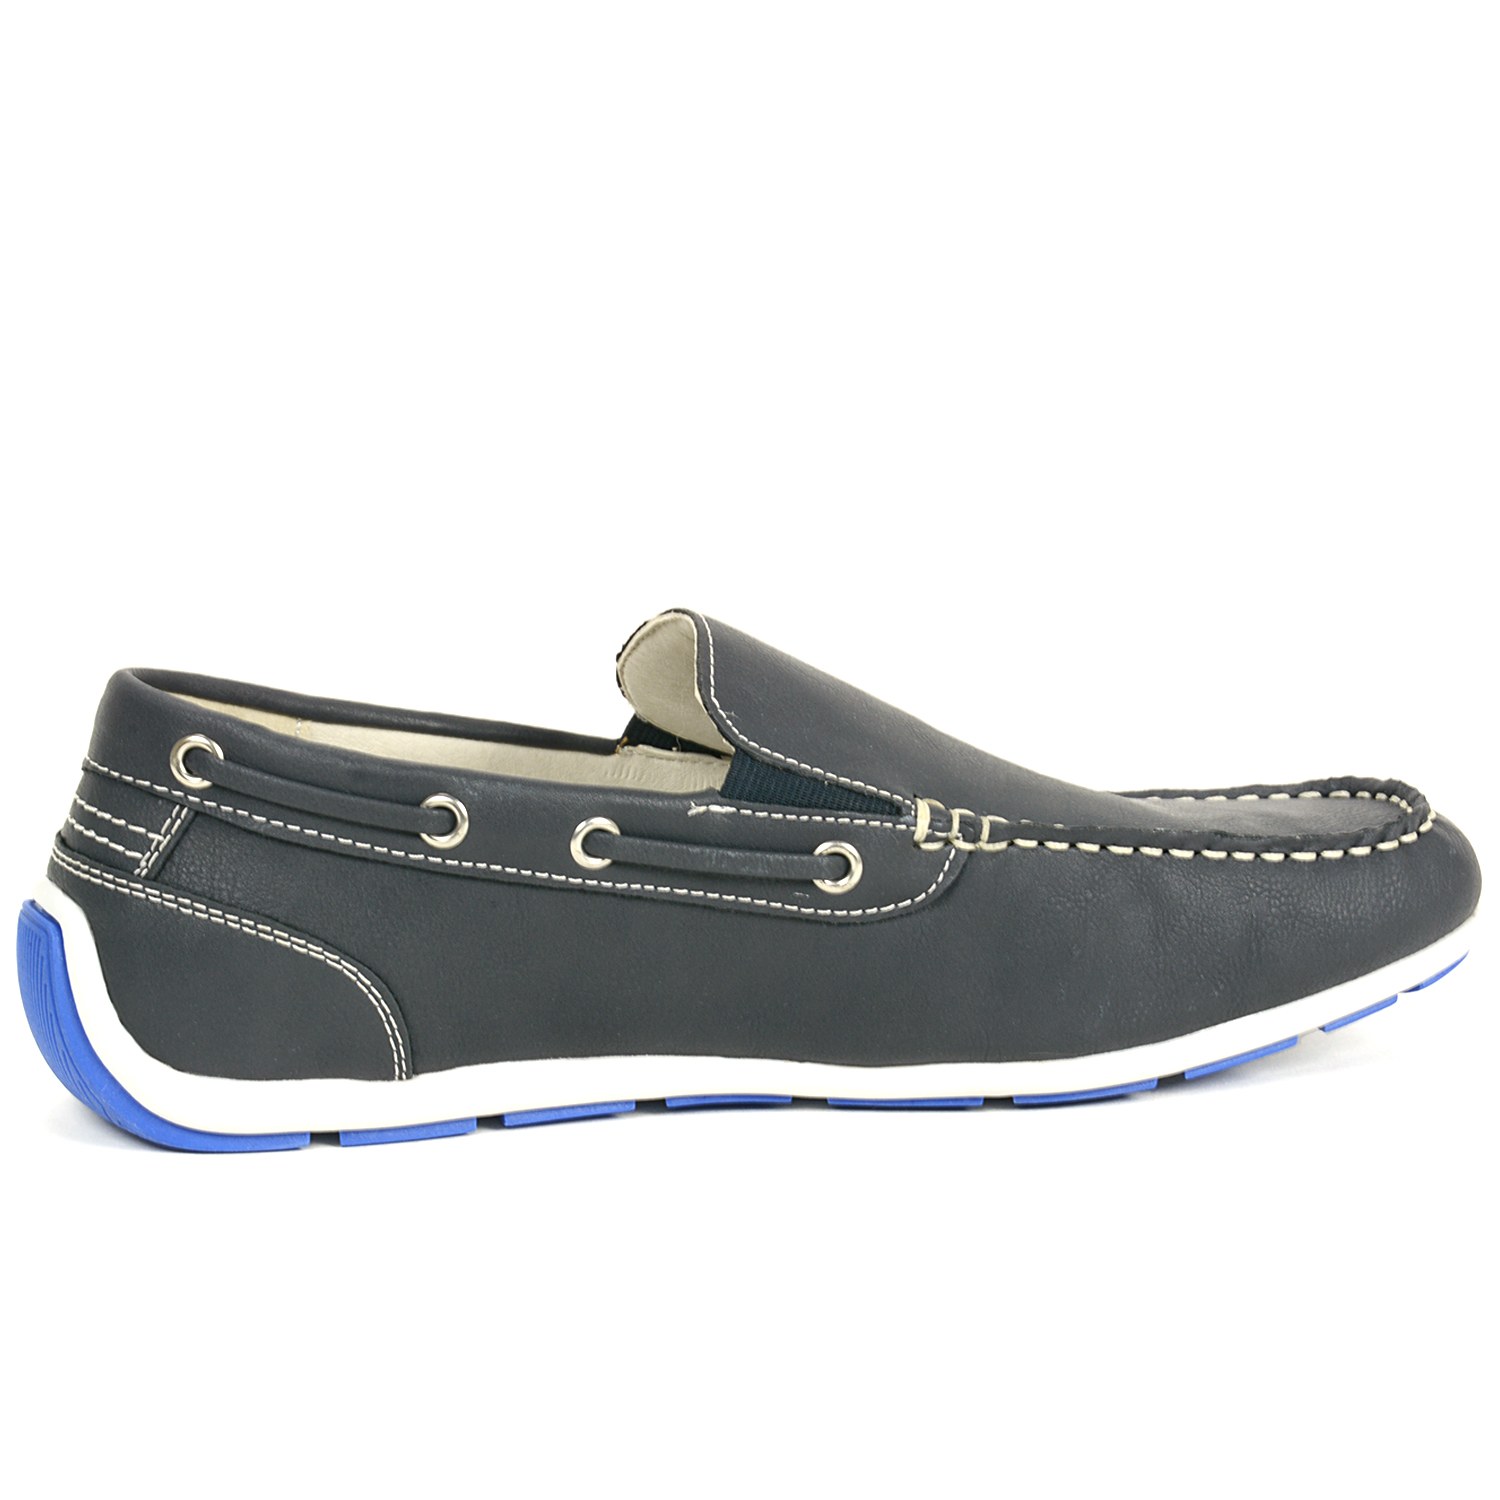 gbx mens casual loafers slip on moc toe boat